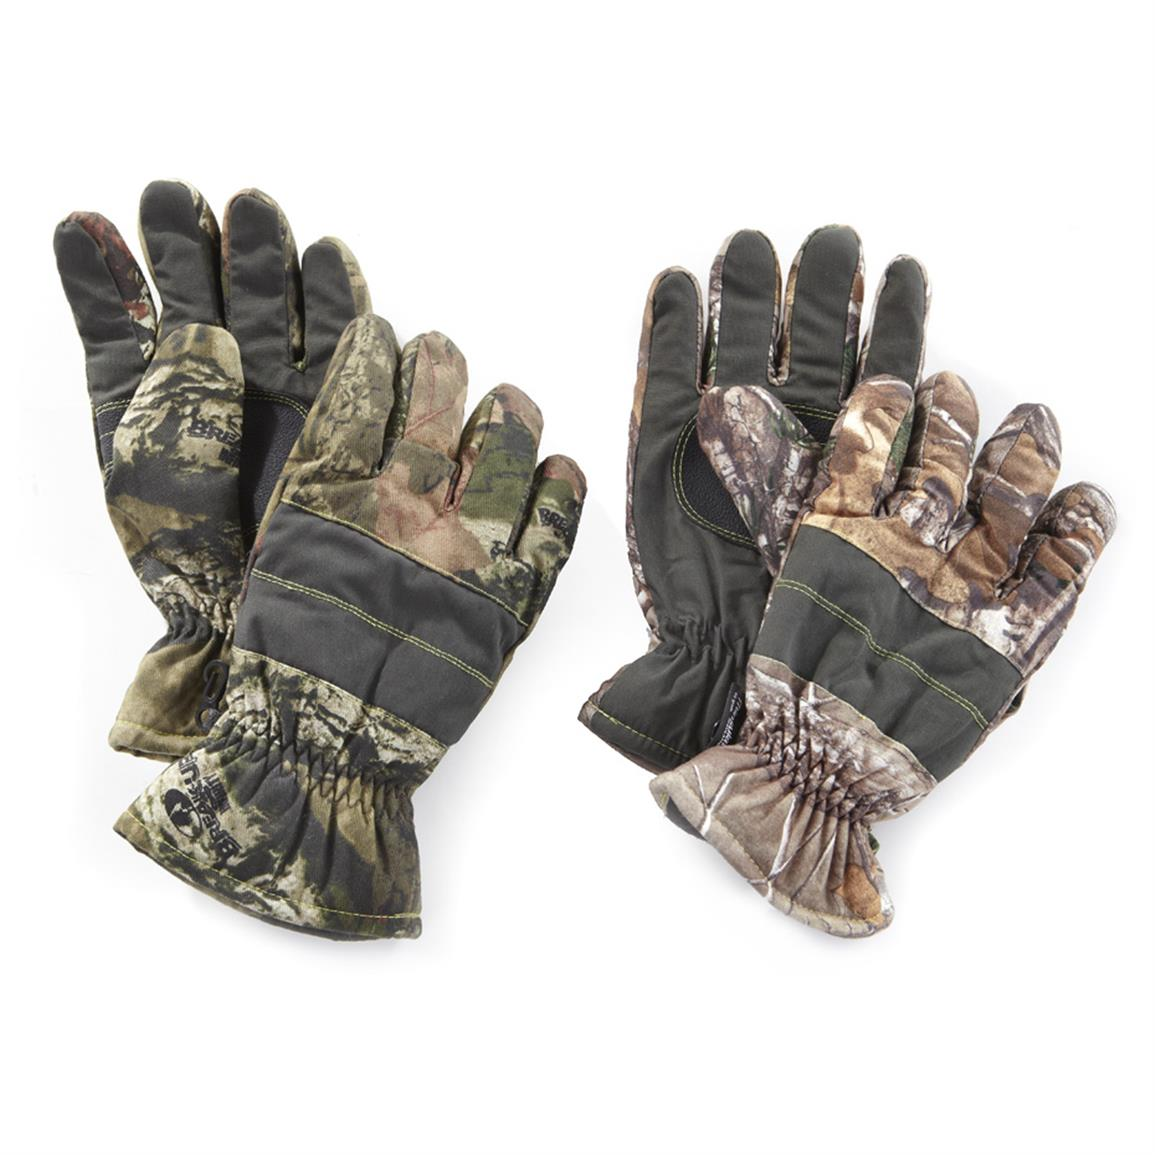 2-Pk. Hotshot Waterproof / Breathable 40 gram Thinsulate Gloves • From Left to Right: Mossy Oak Infinifty®  / Realtree Xtra®